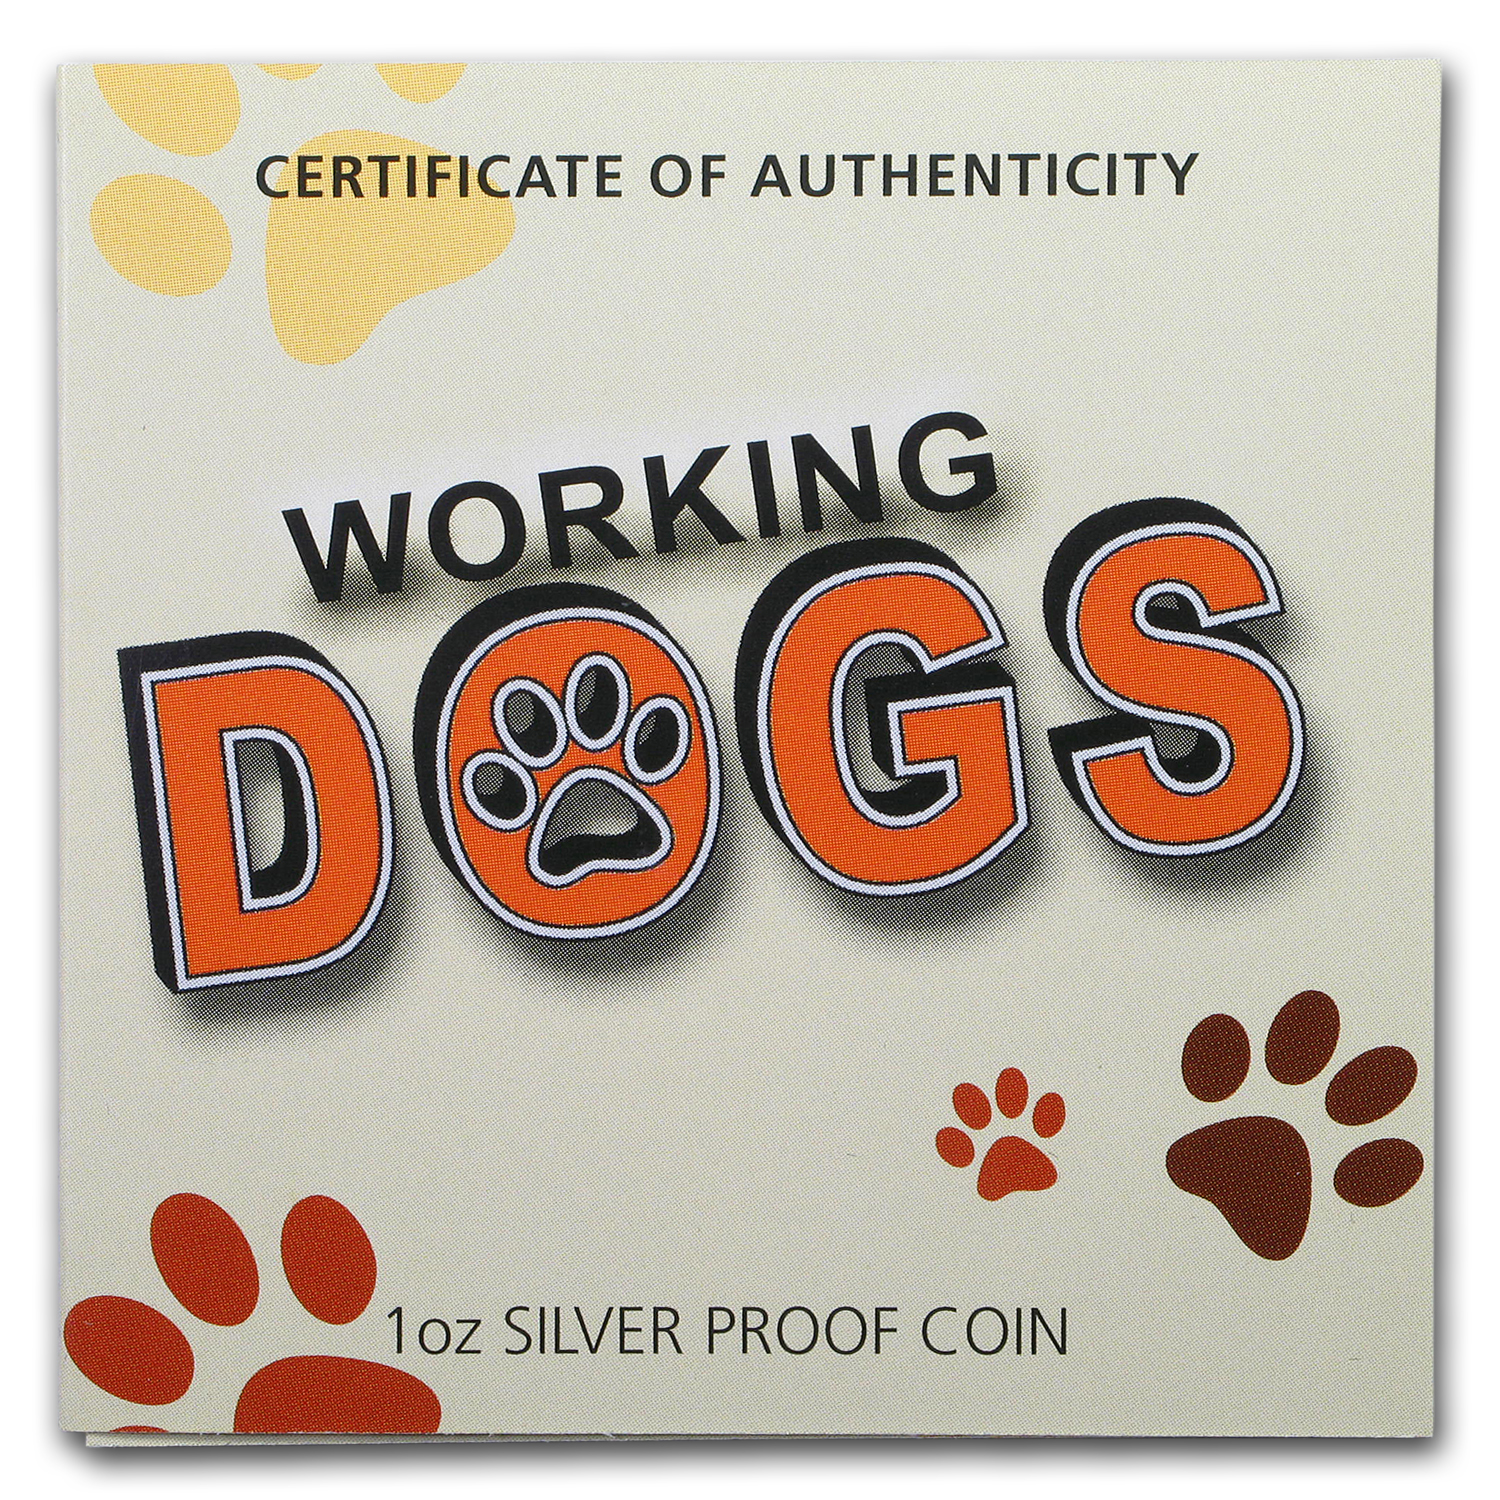 2011 1 oz Silver Working Dog Proof (German Shepherd)